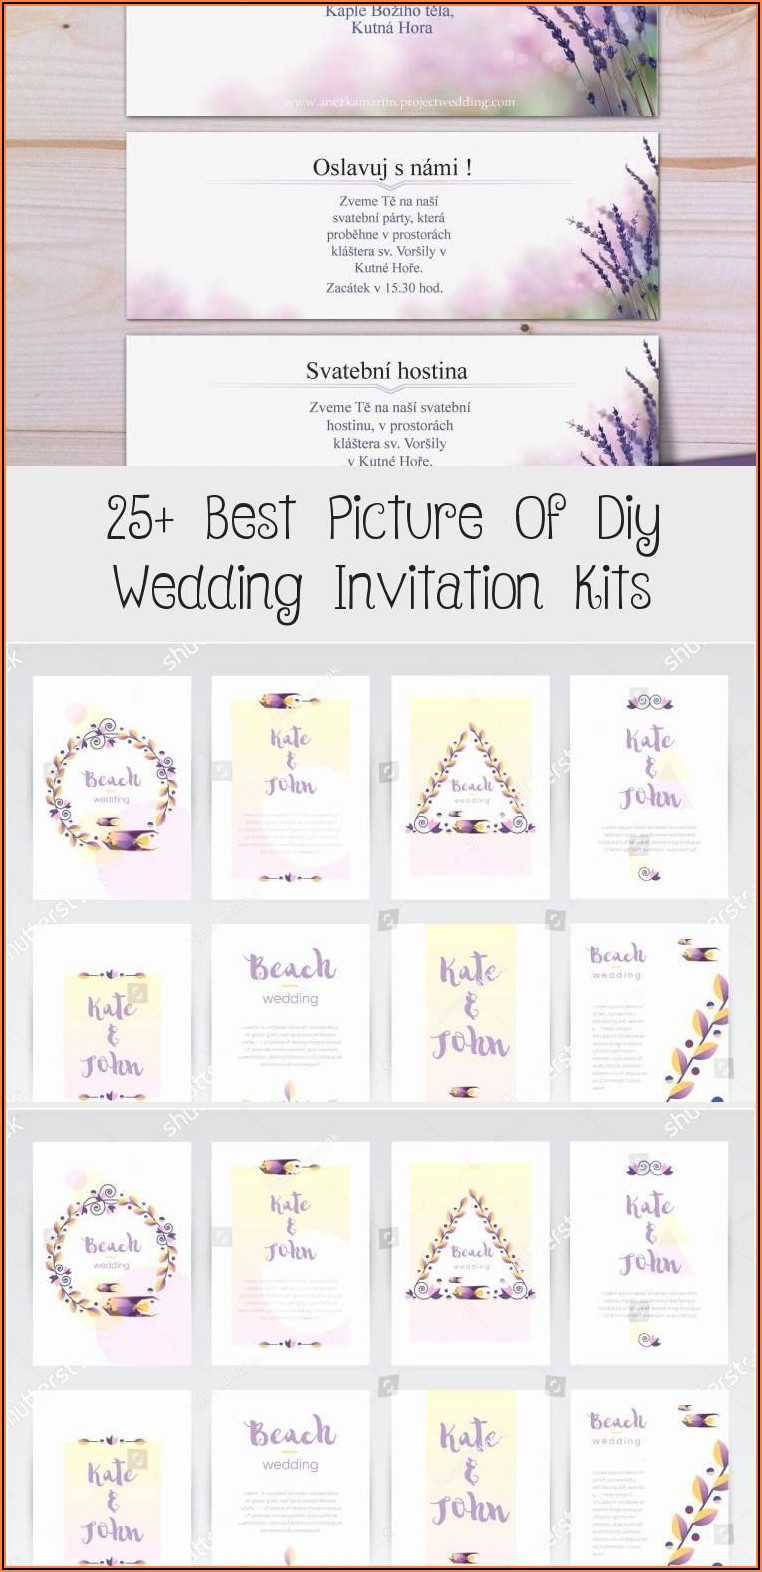 Diy Wedding Invitations Kits Cheap